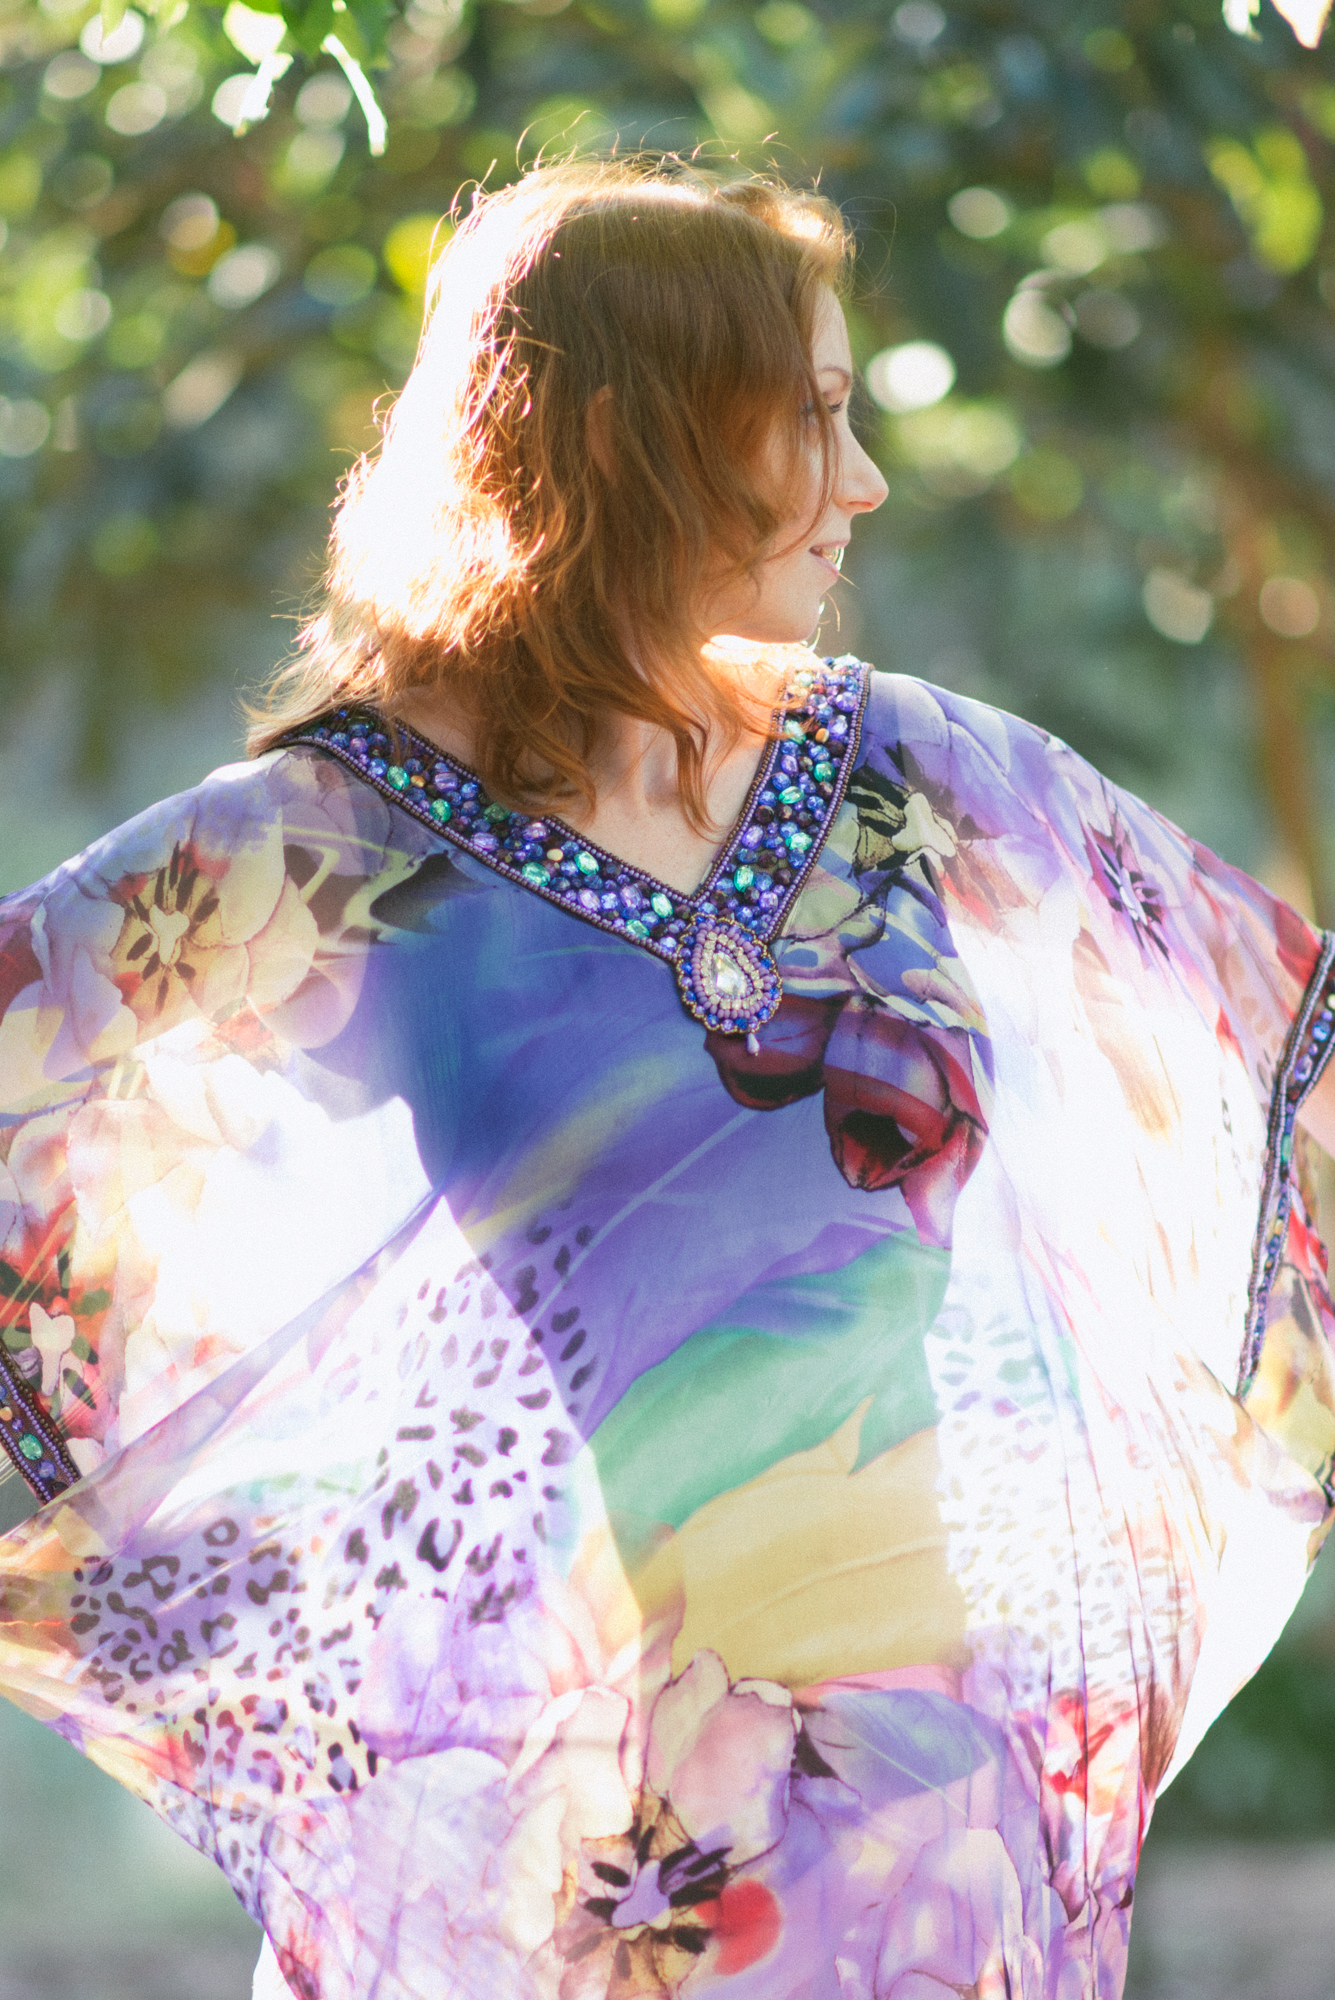 85mm, Nikon, Redhead, backlight, Melbourne photography, Pause The Moment, Kaftan